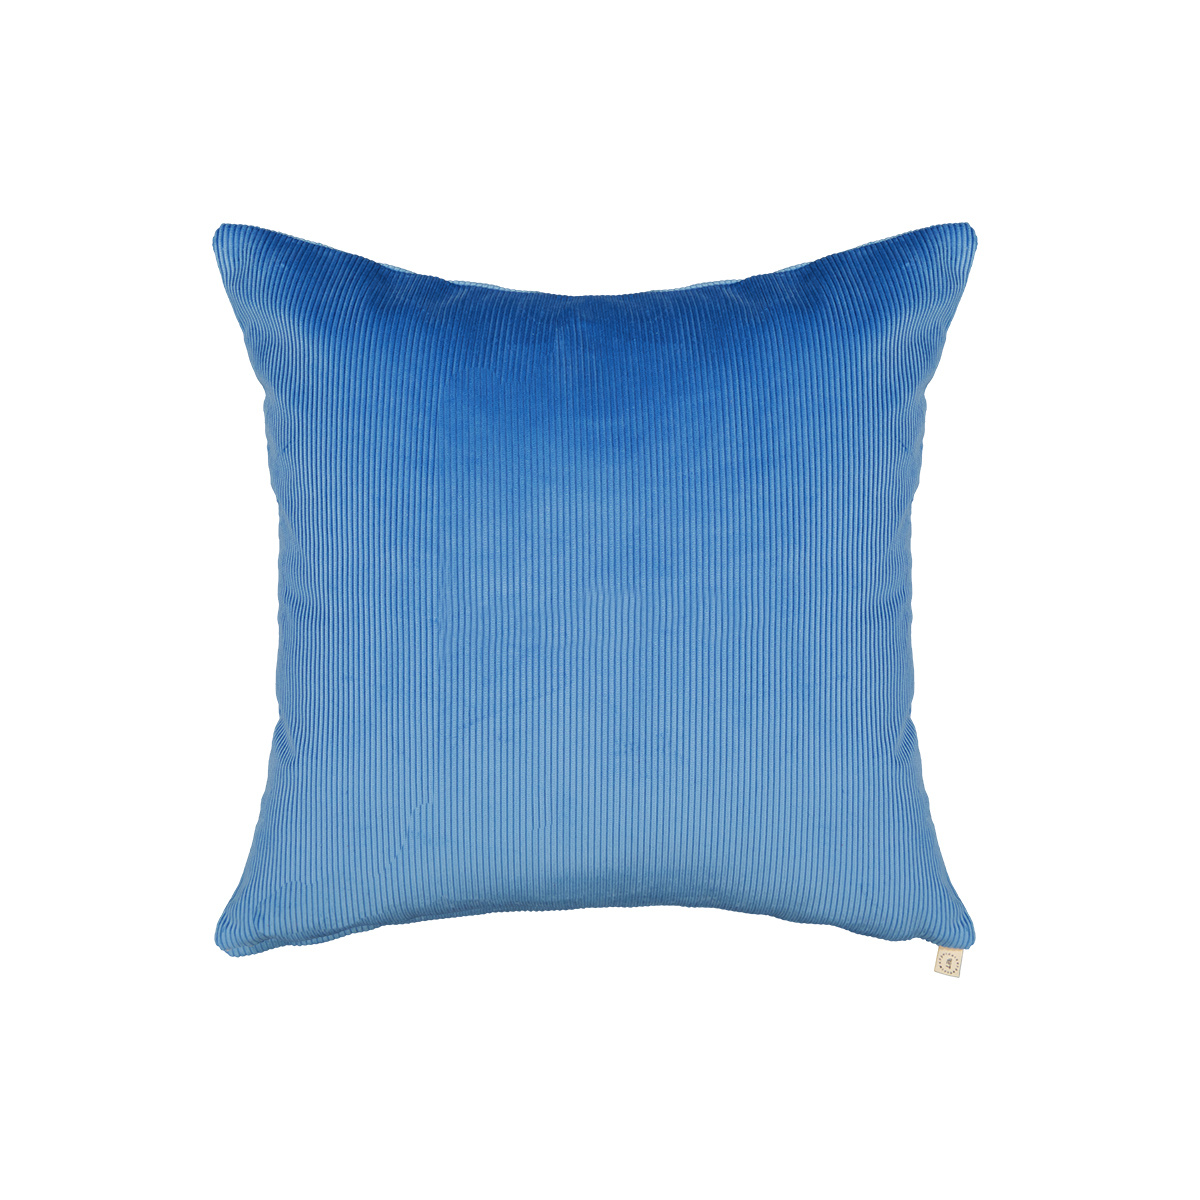 Carino blue corduroy cushion